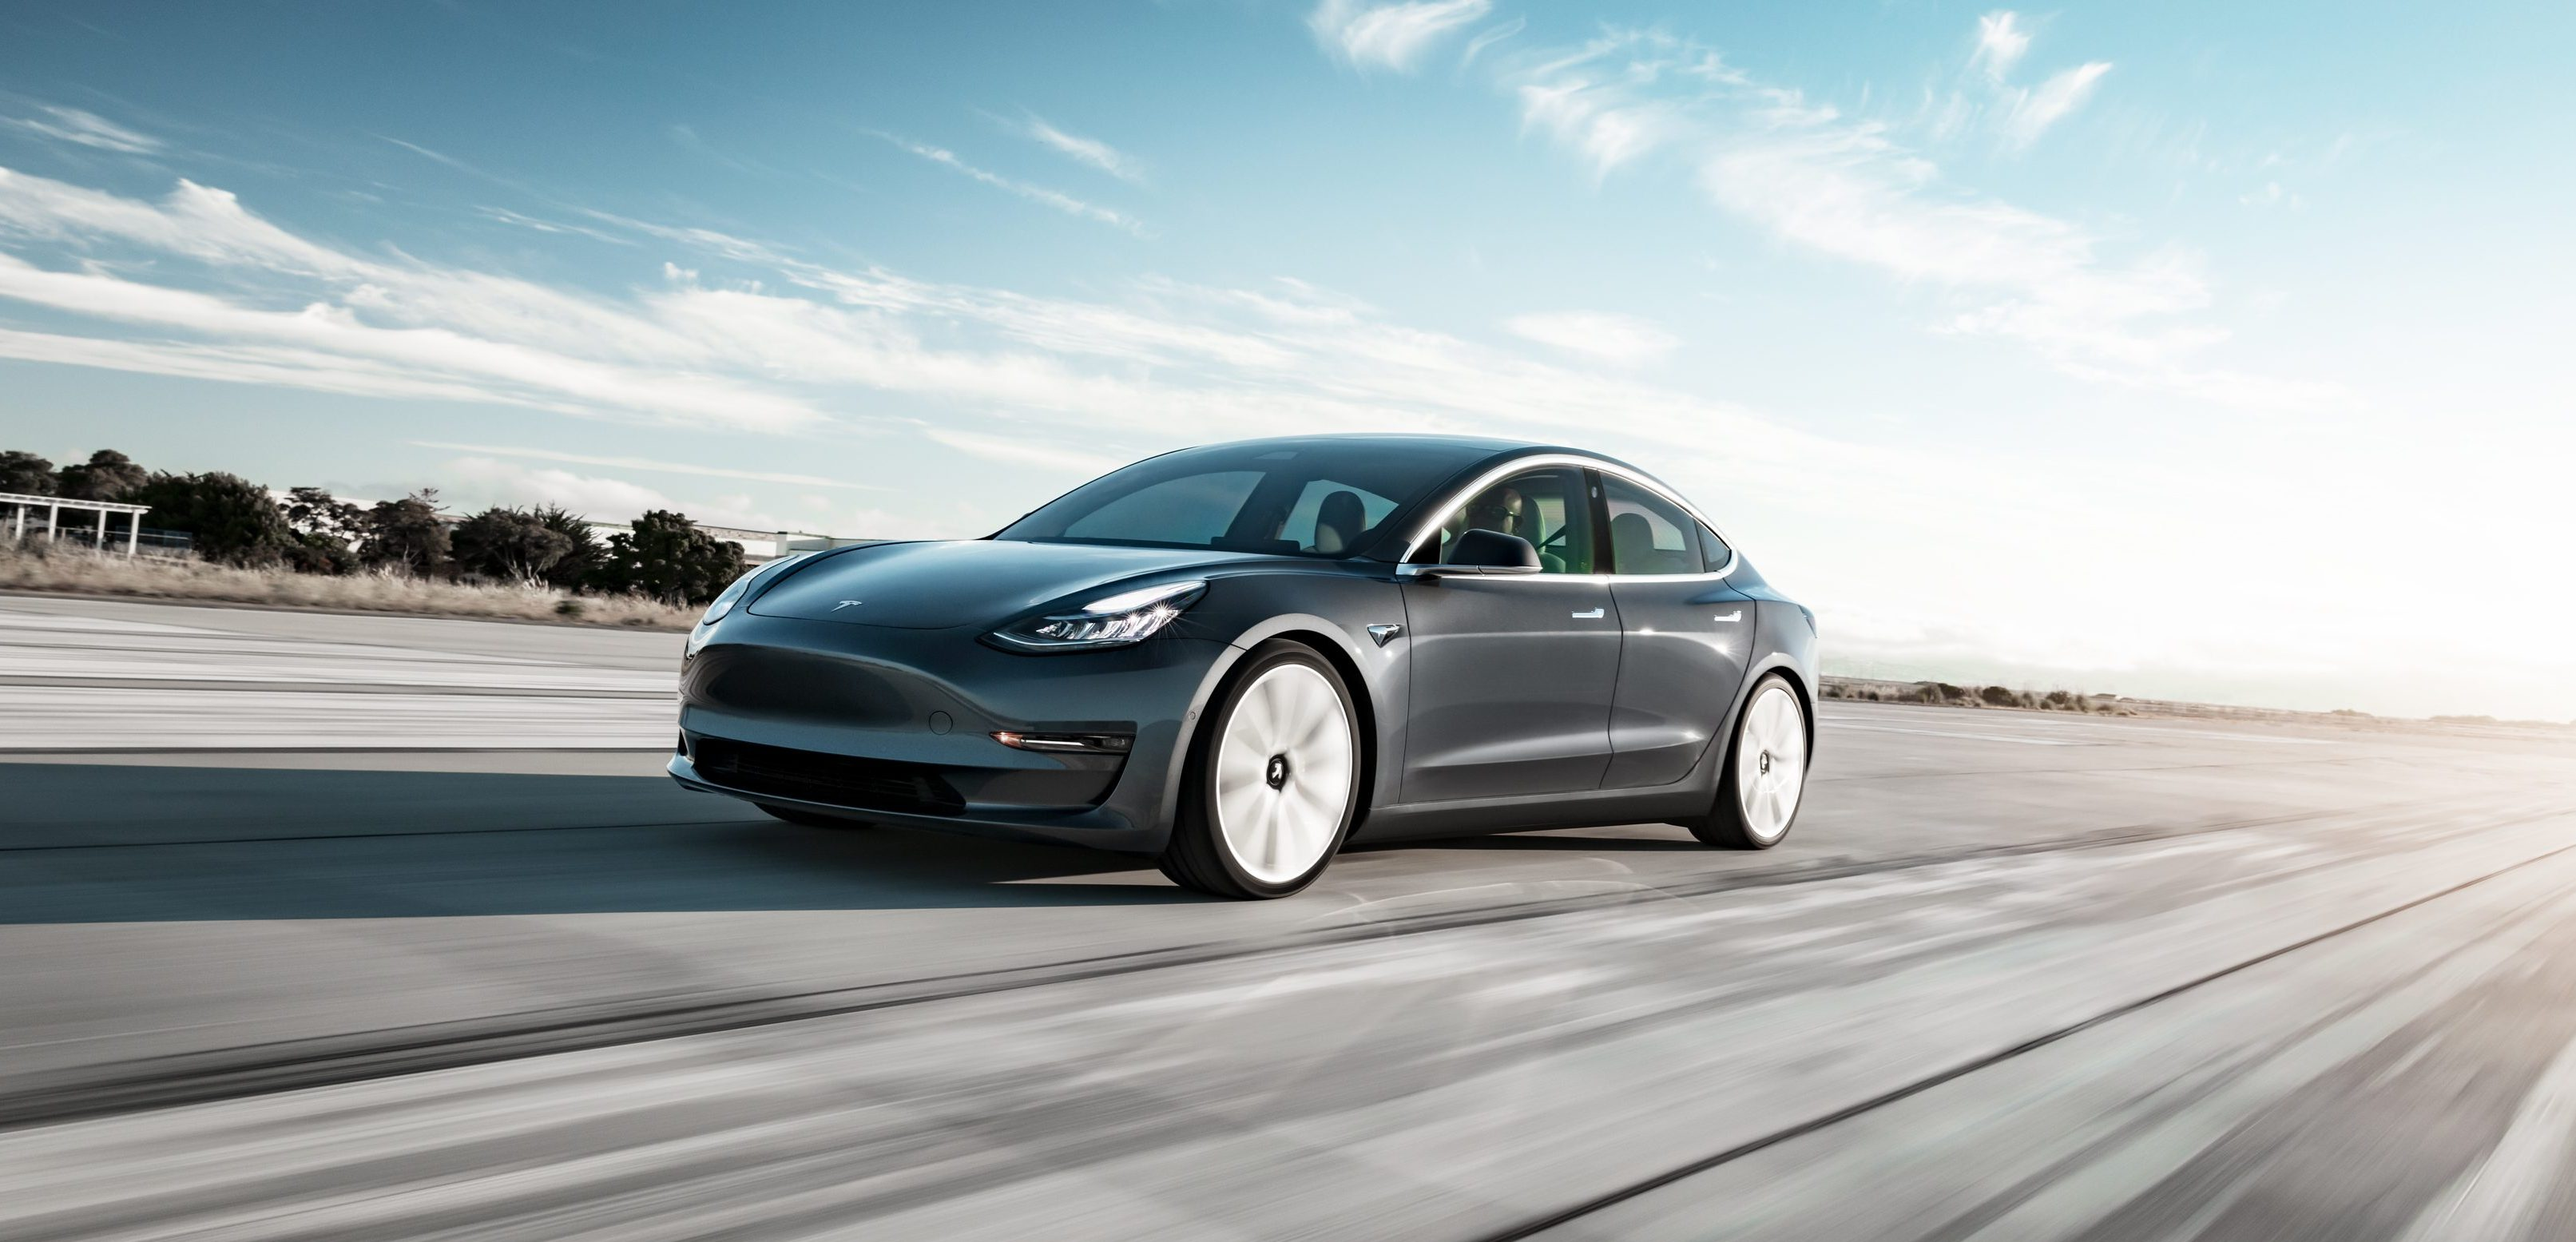 Tesla Model 3 receives European homologation as first batch is on its way